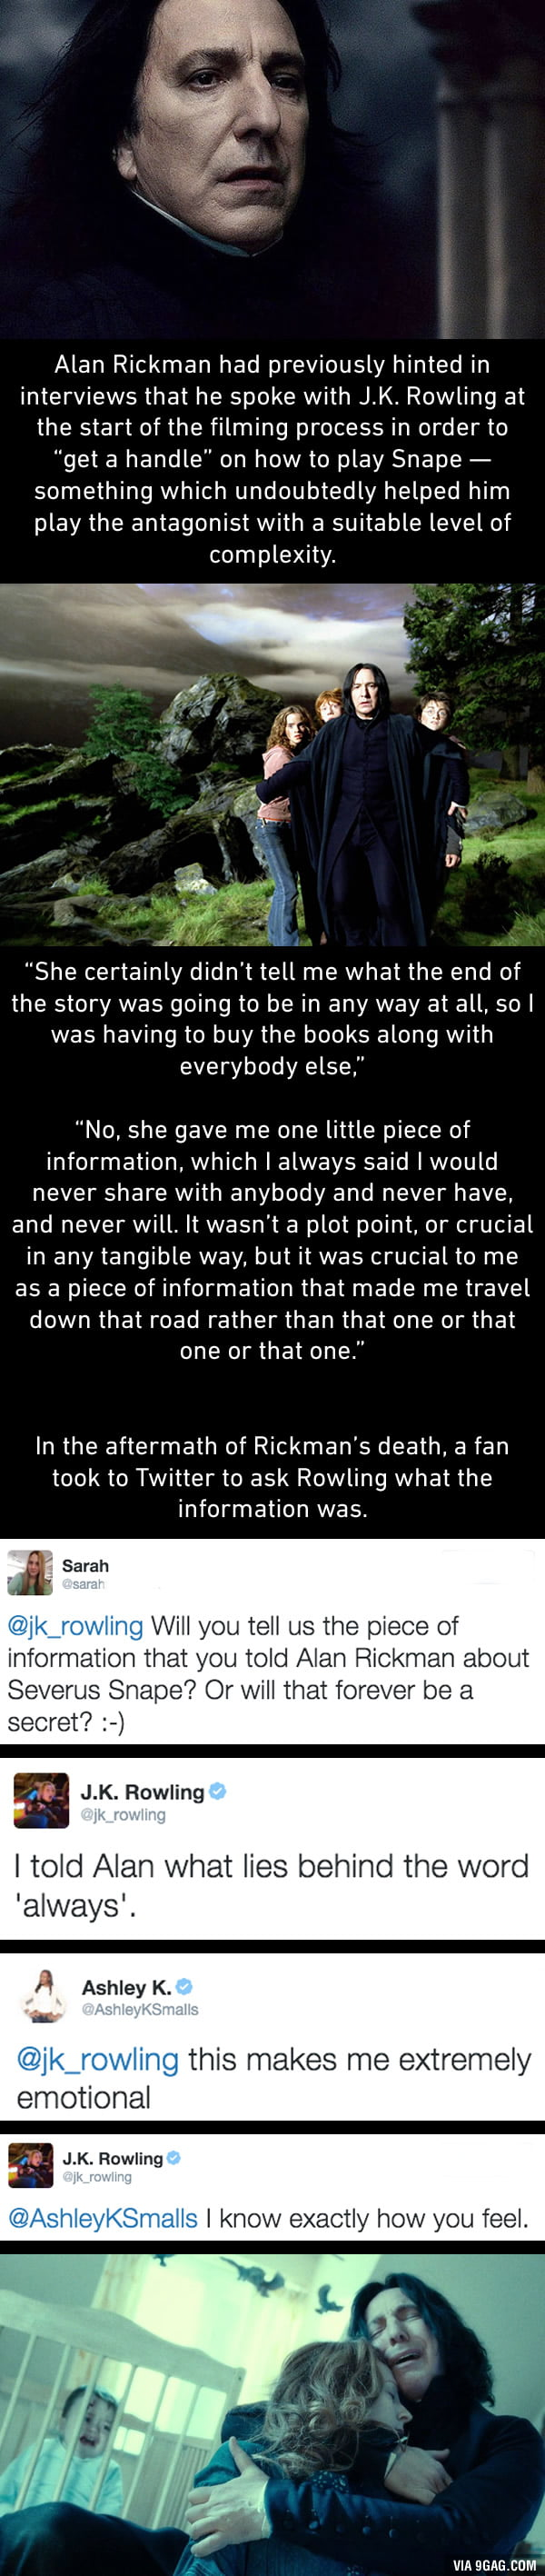 J.K. Rowling reveals how she gave Alan Rickman a major clue about Snape's character. Warning: manly tears will be shed.